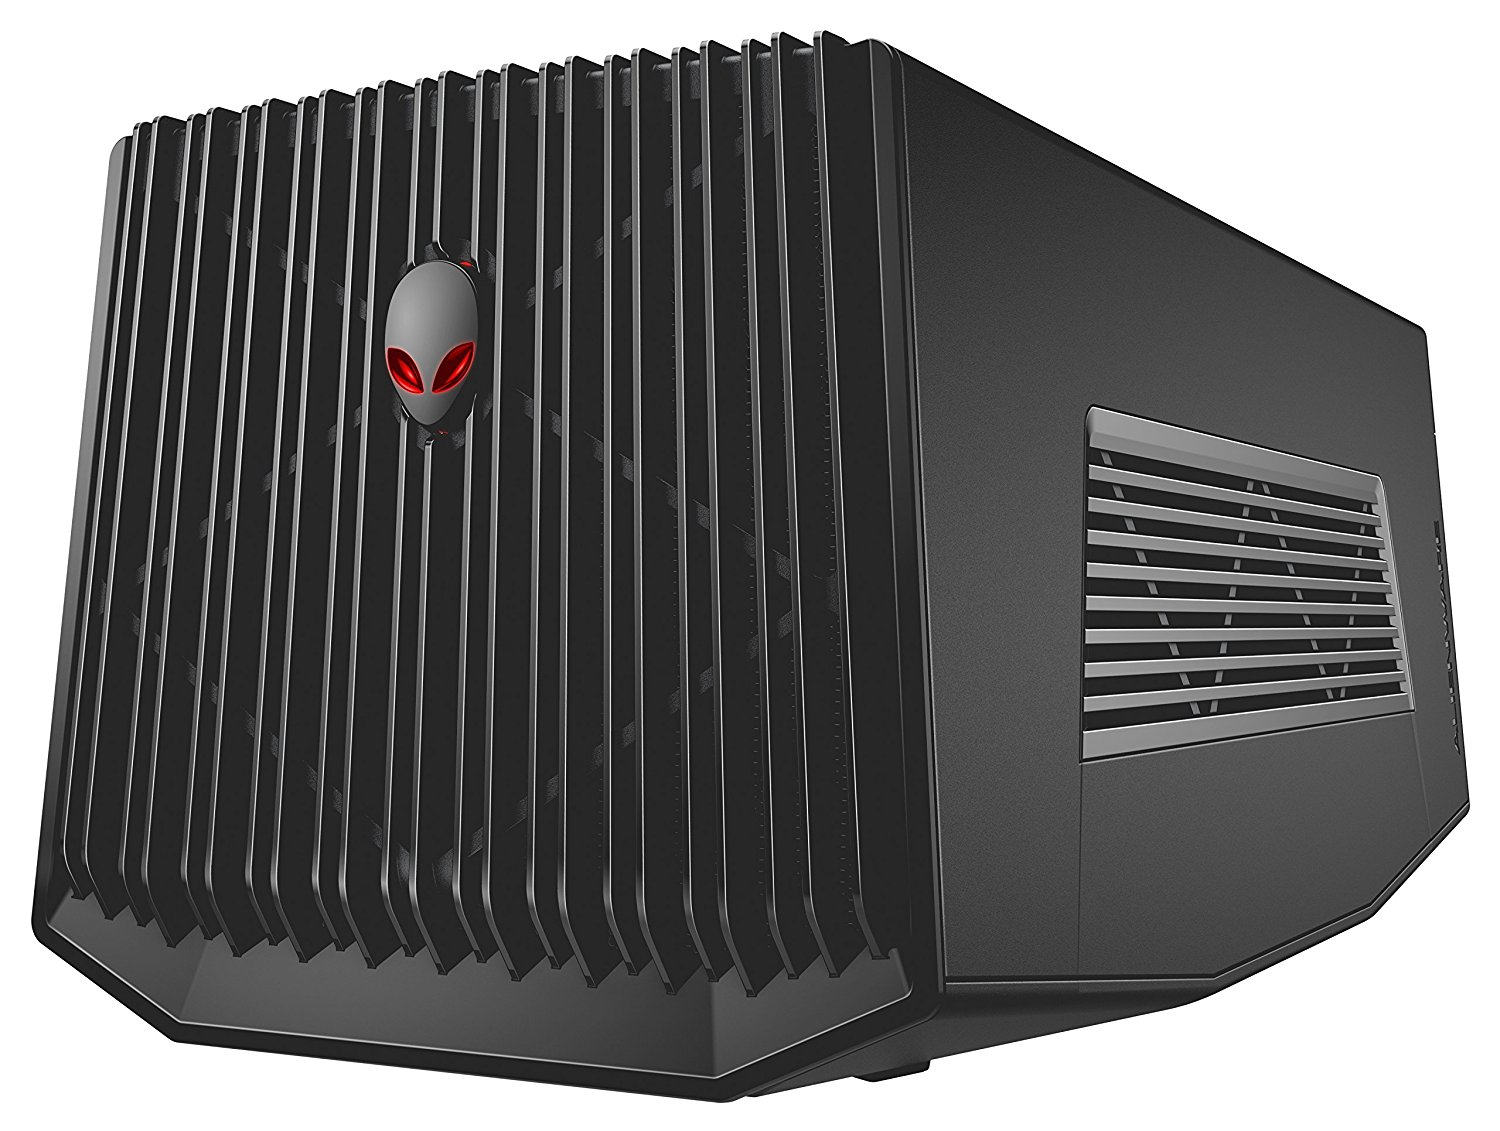 Alienwareの「Graphics Amplifier」